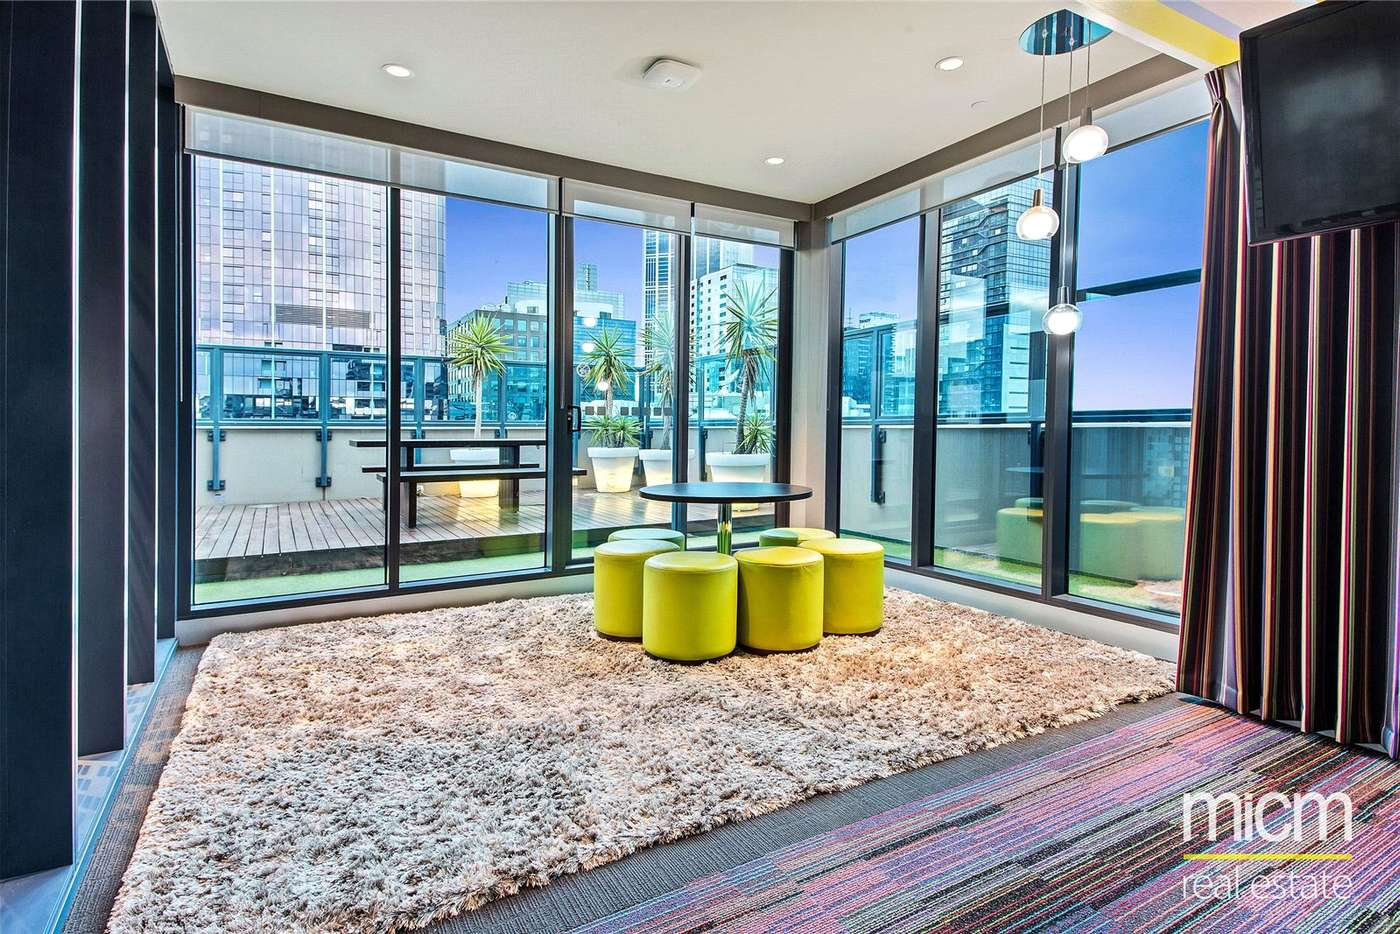 Seventh view of Homely studio listing, 1609/181 ABeckett Street, Melbourne VIC 3000